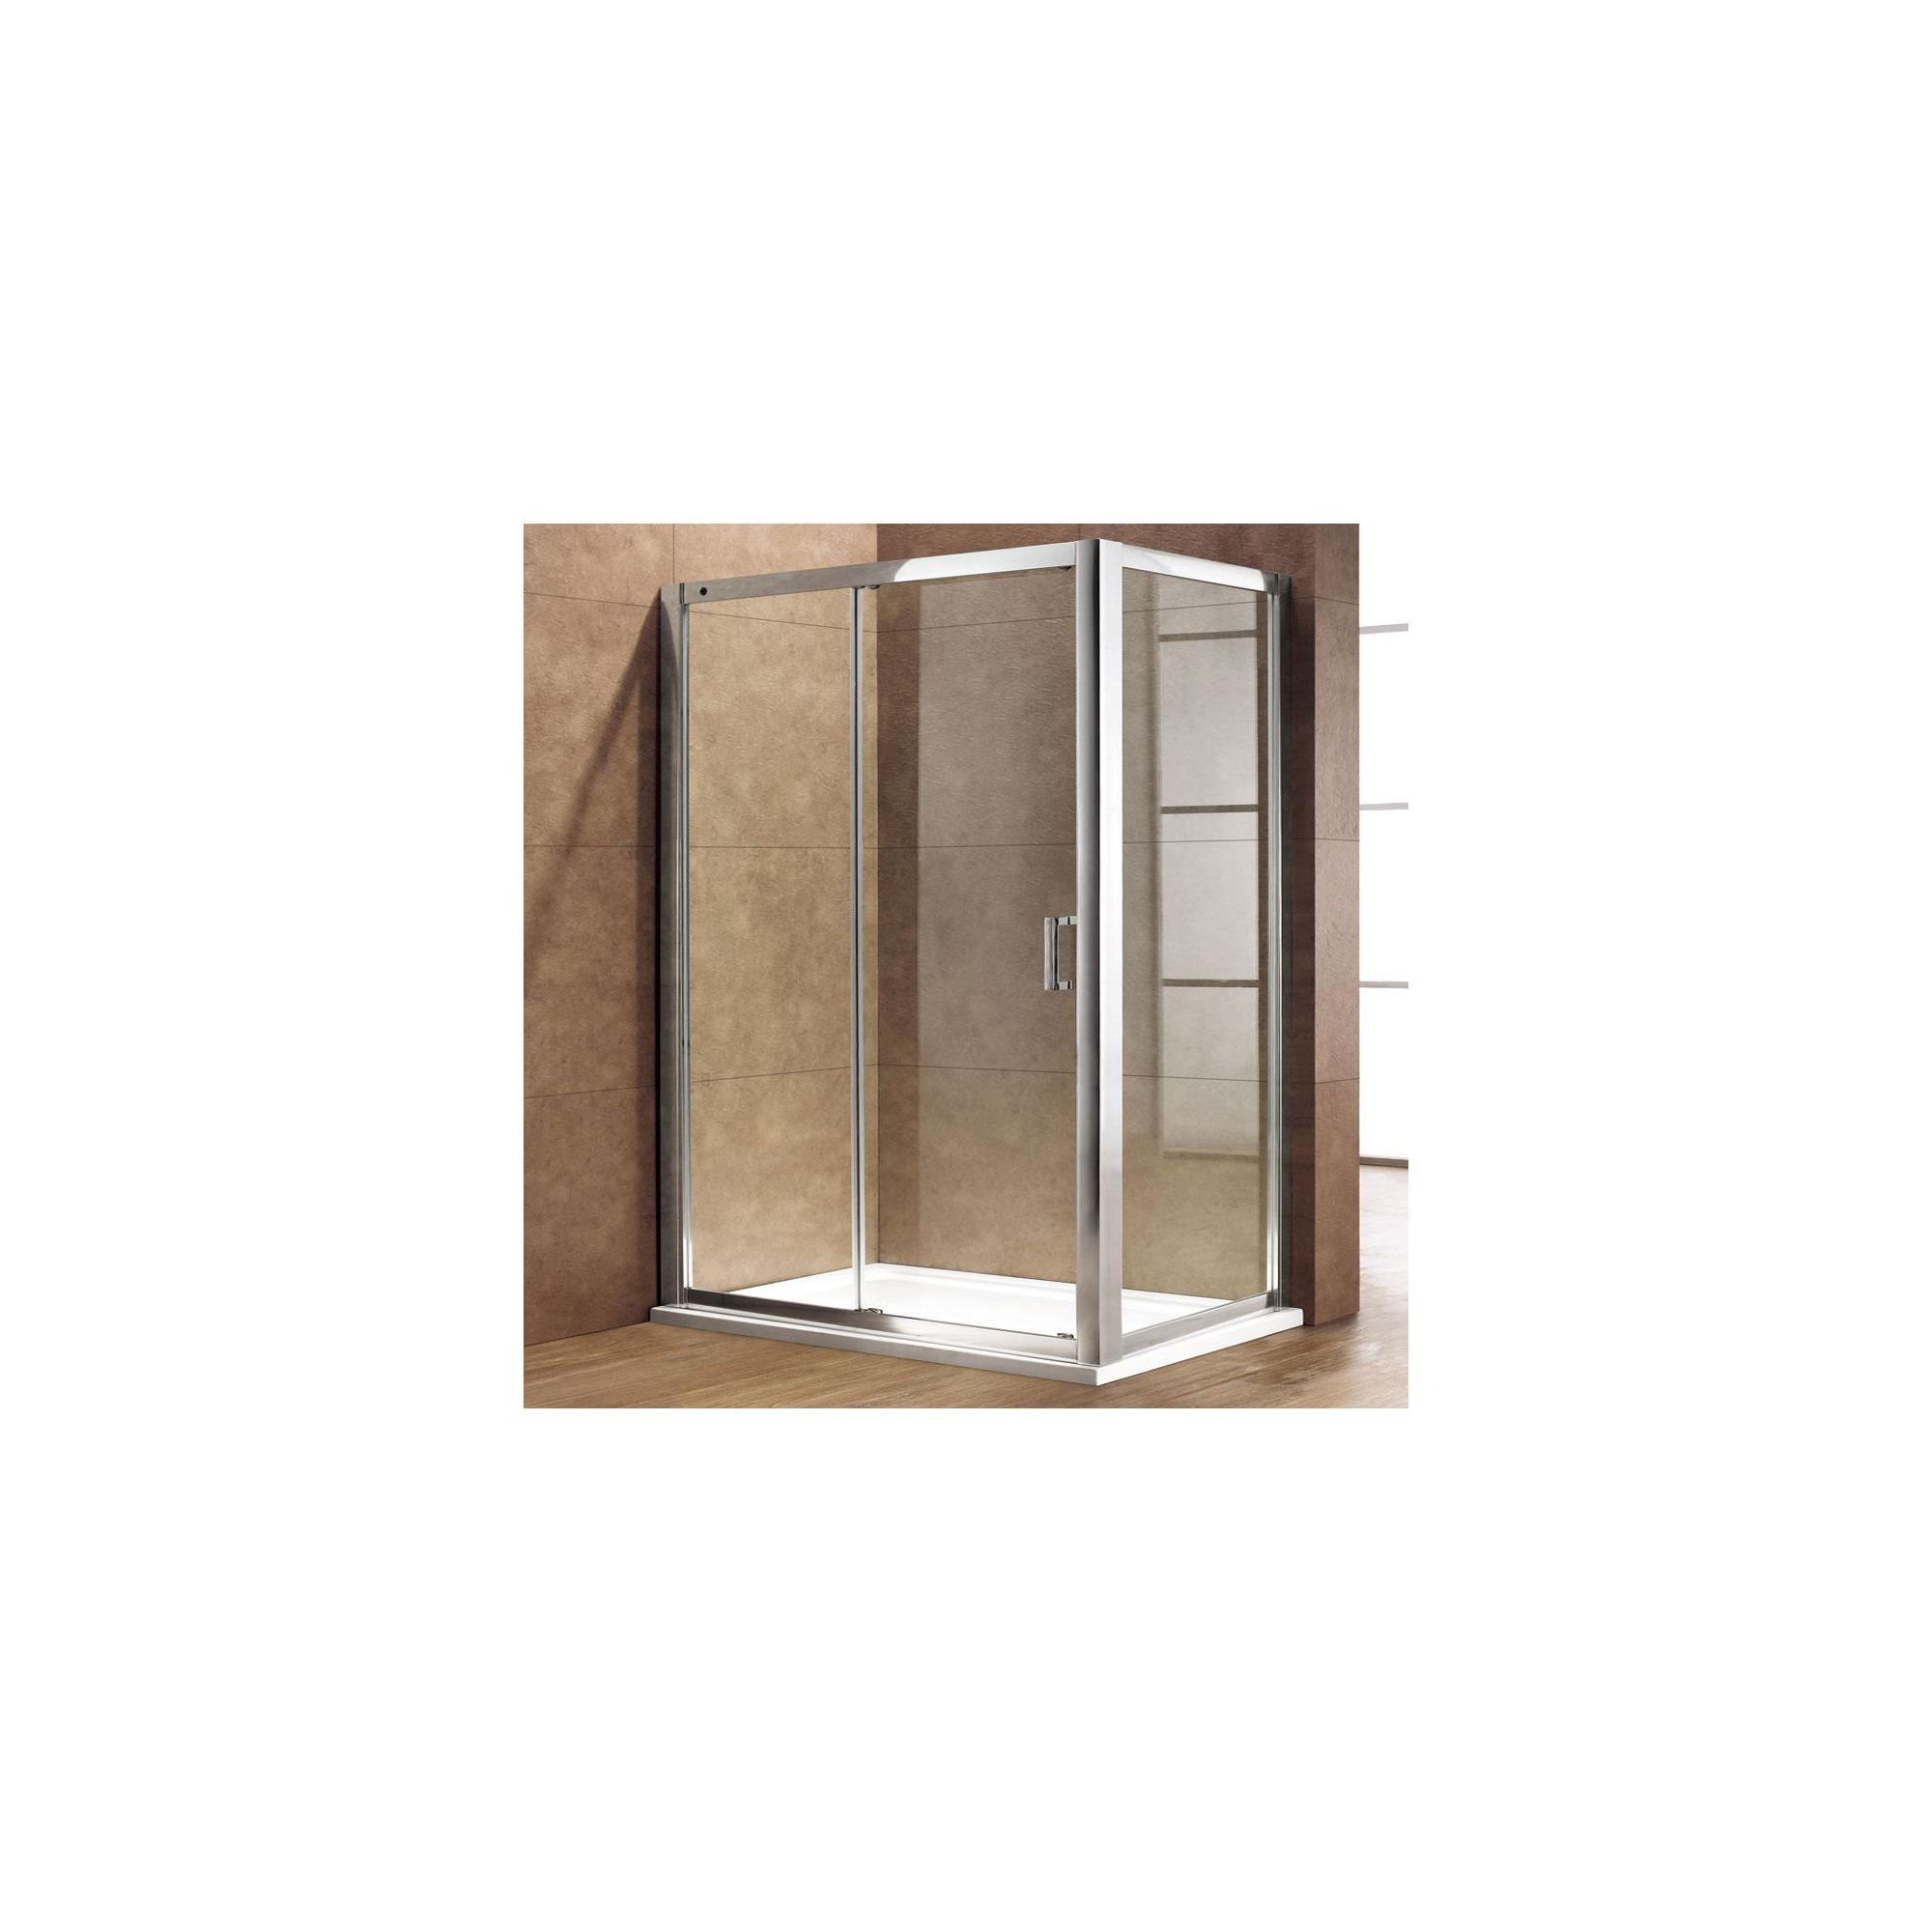 Duchy Premium Single Sliding Door Shower Enclosure, 1400mm x 700mm, 8mm Glass, Low Profile Tray at Tesco Direct